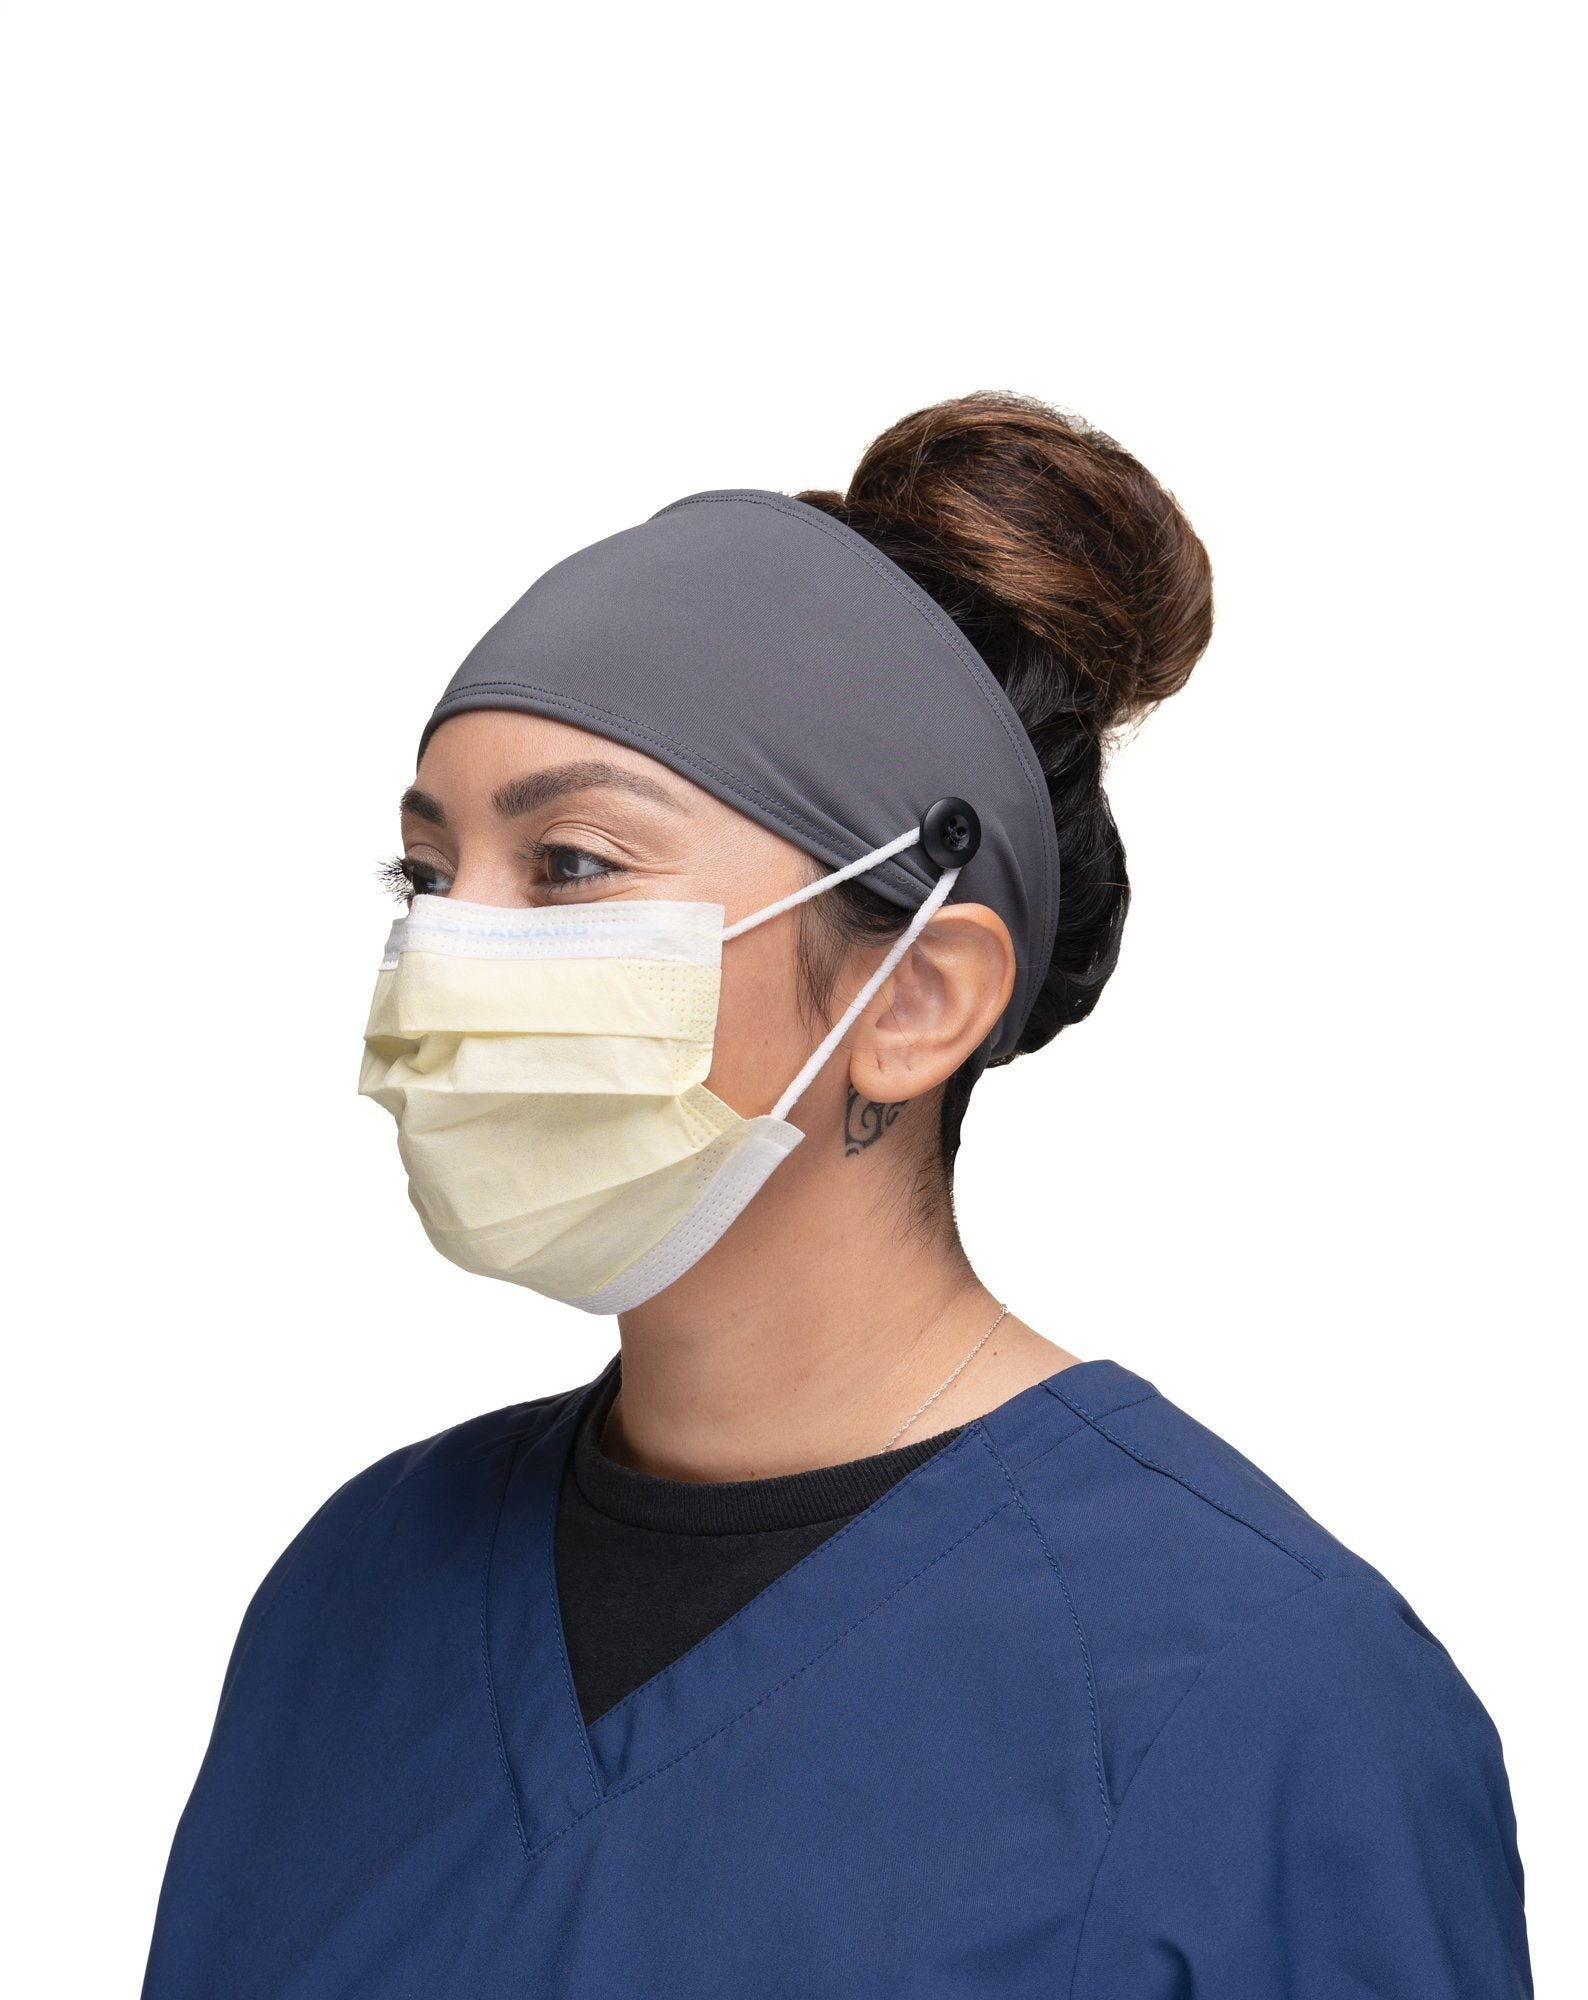 Ear Saver Headbands for Nurses